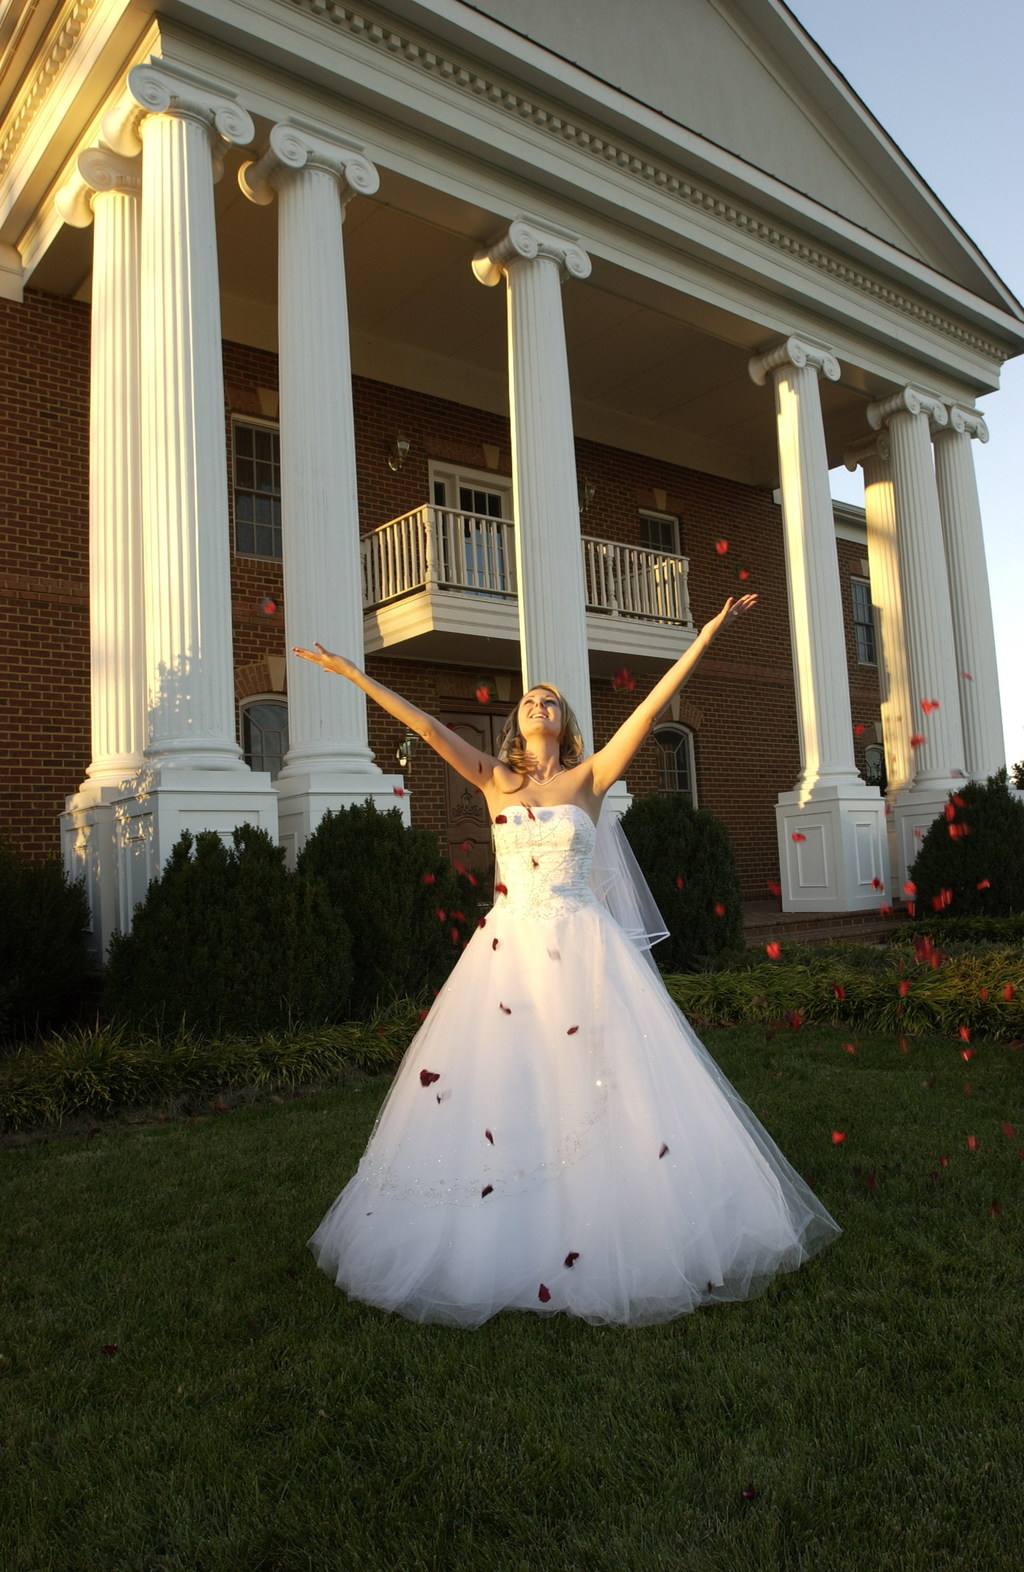 Bride throwing flowers in the air at RH